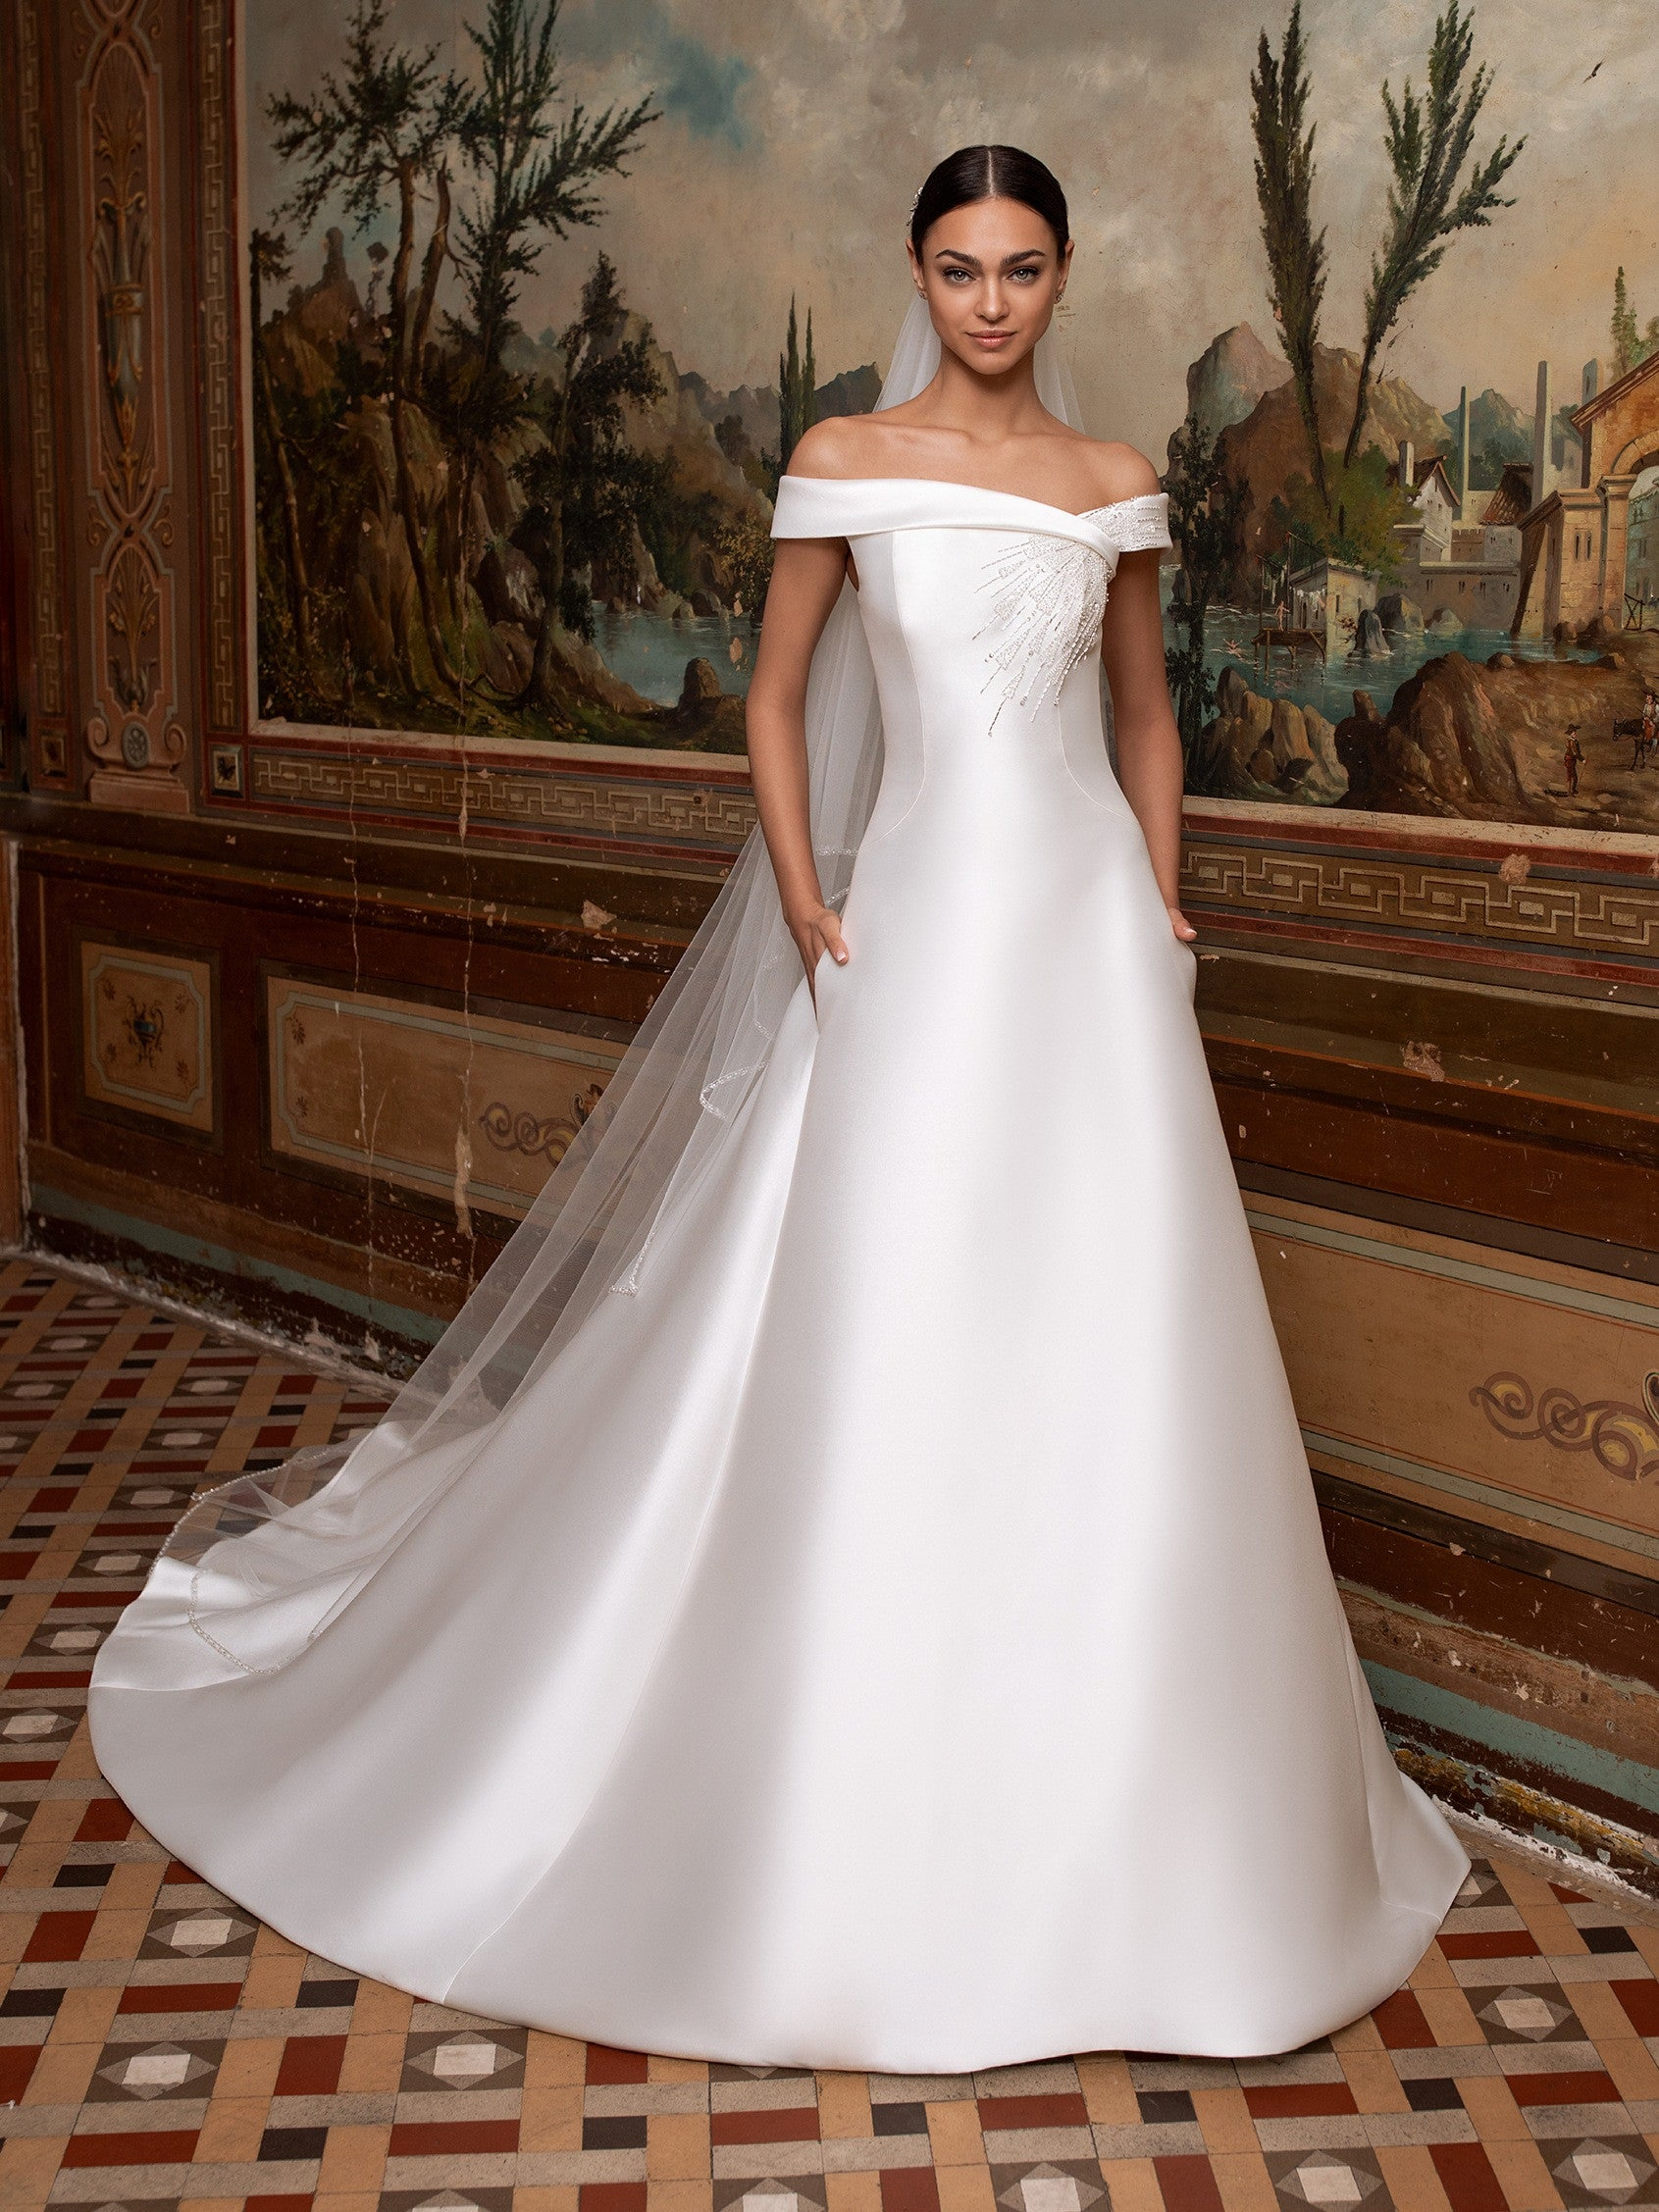 A-line wedding dress with off-the-shoulder sleeves